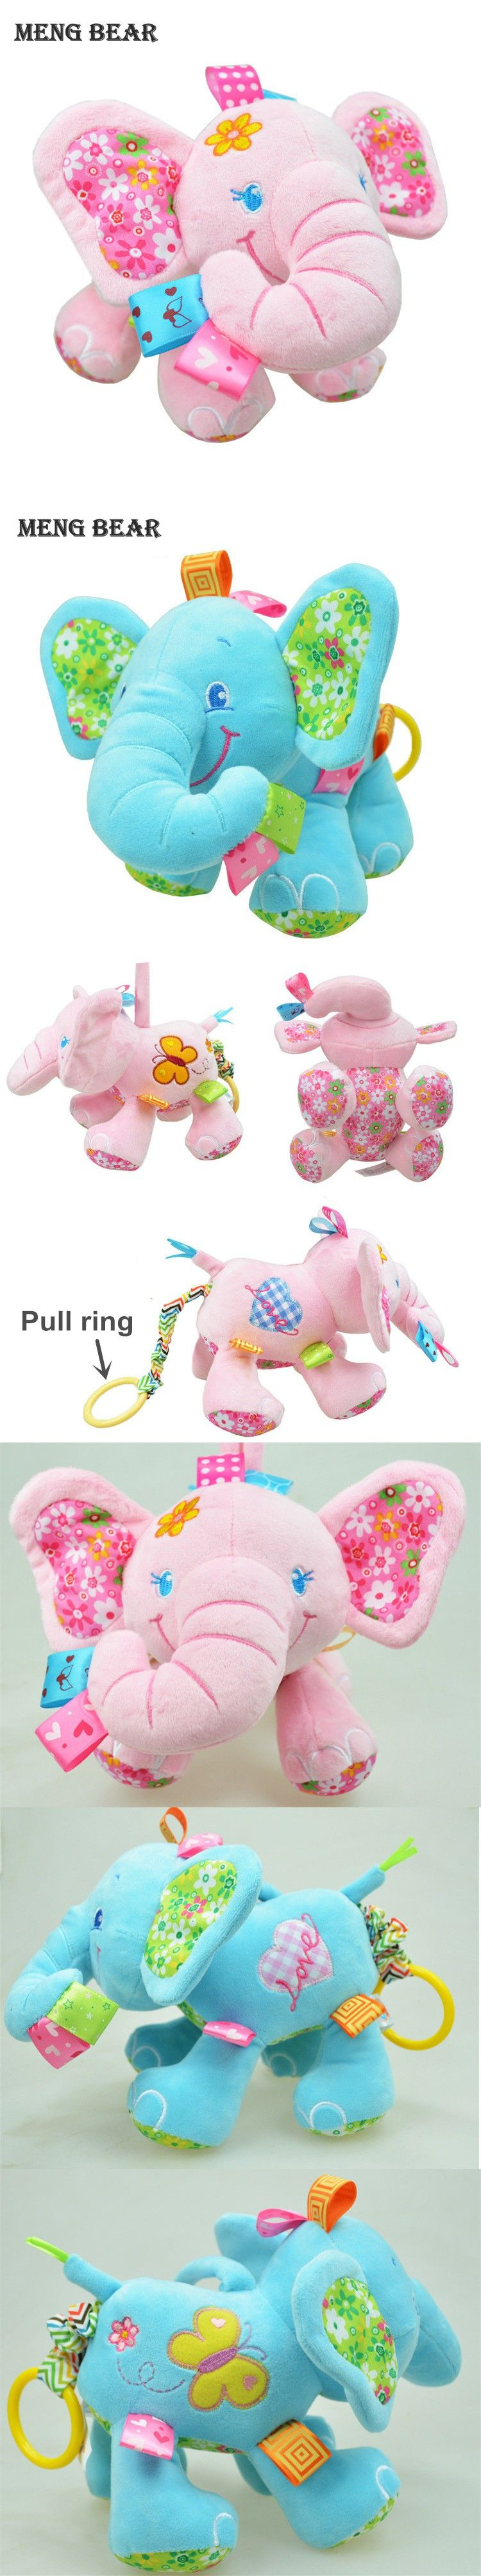 Sozzy Newborn Baby Hanging Toys Cute Animal Elephant Pull Bell